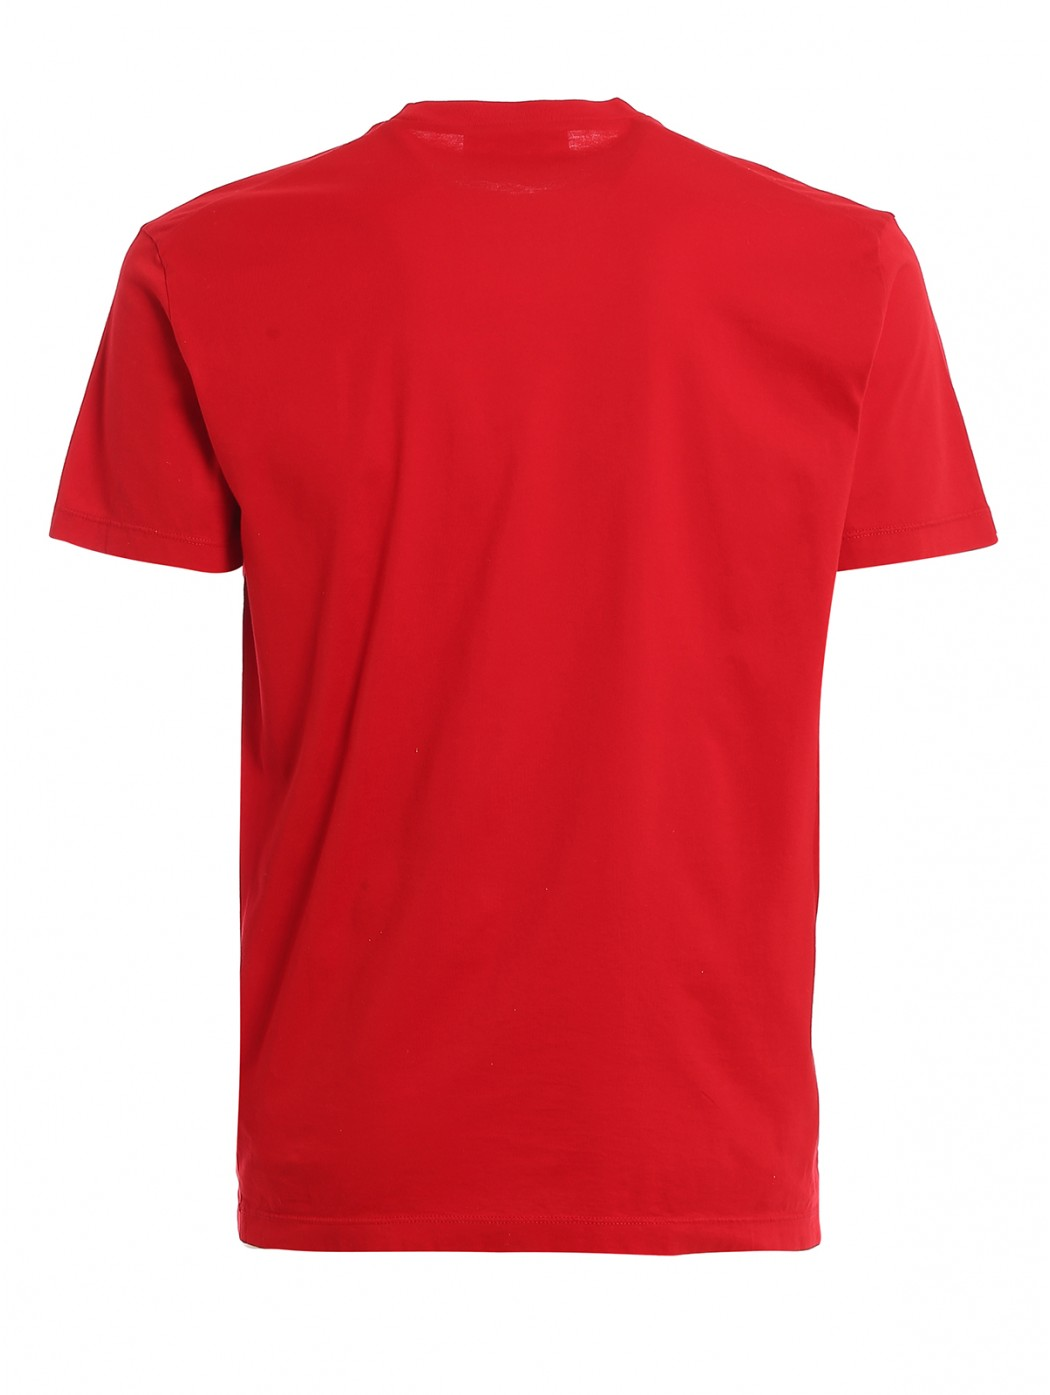 T-shirt con stampa DSQUARED2 S74GD0706S22427 307